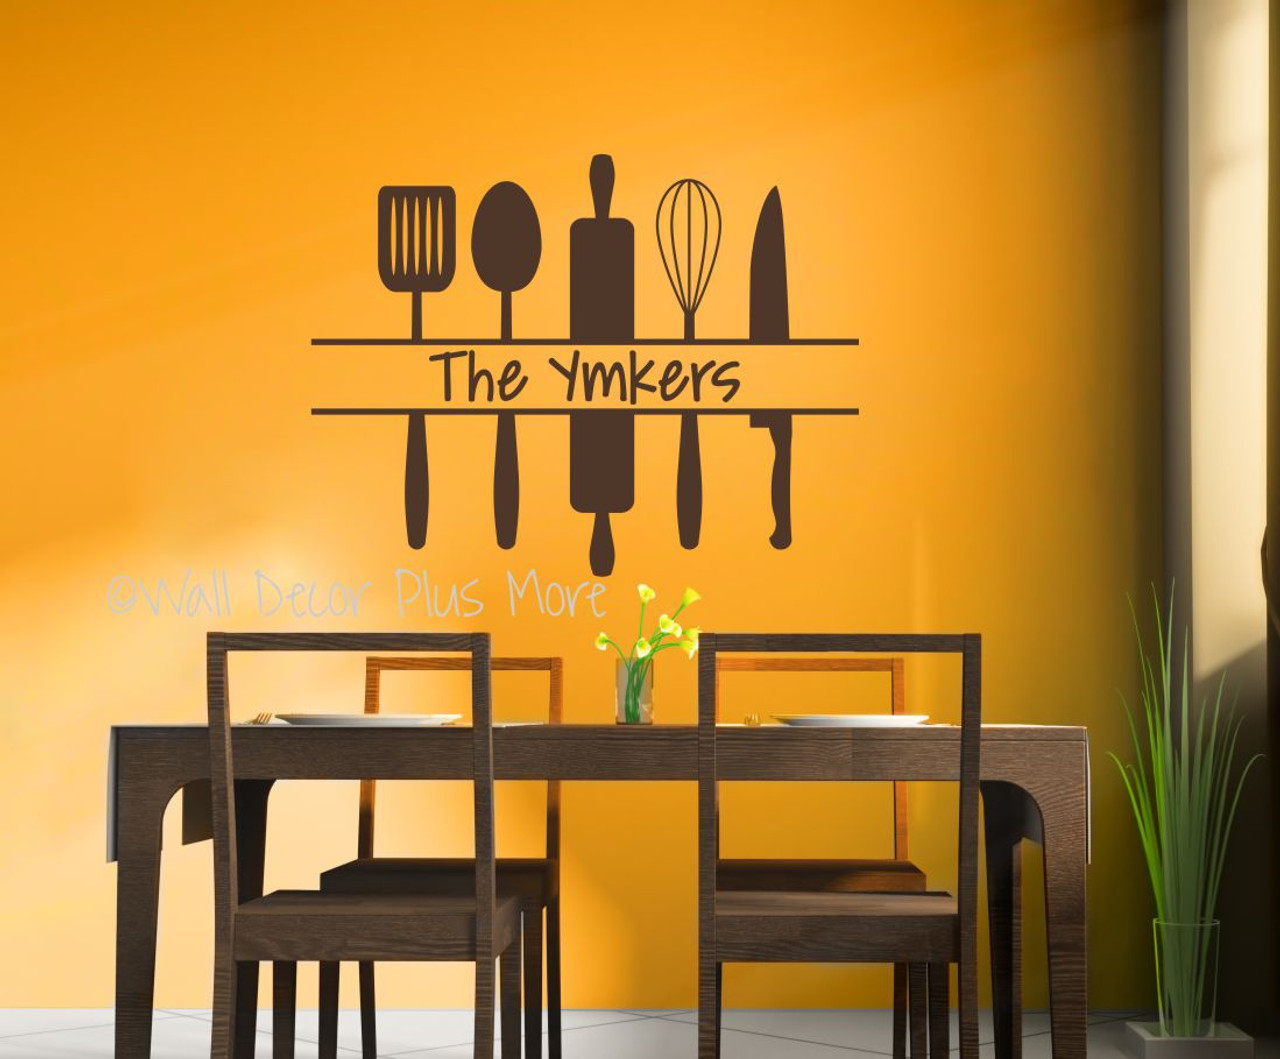 Exceptional Personalized Kitchen Wall Art Custom Name With Utensils Wall Decal Sticker